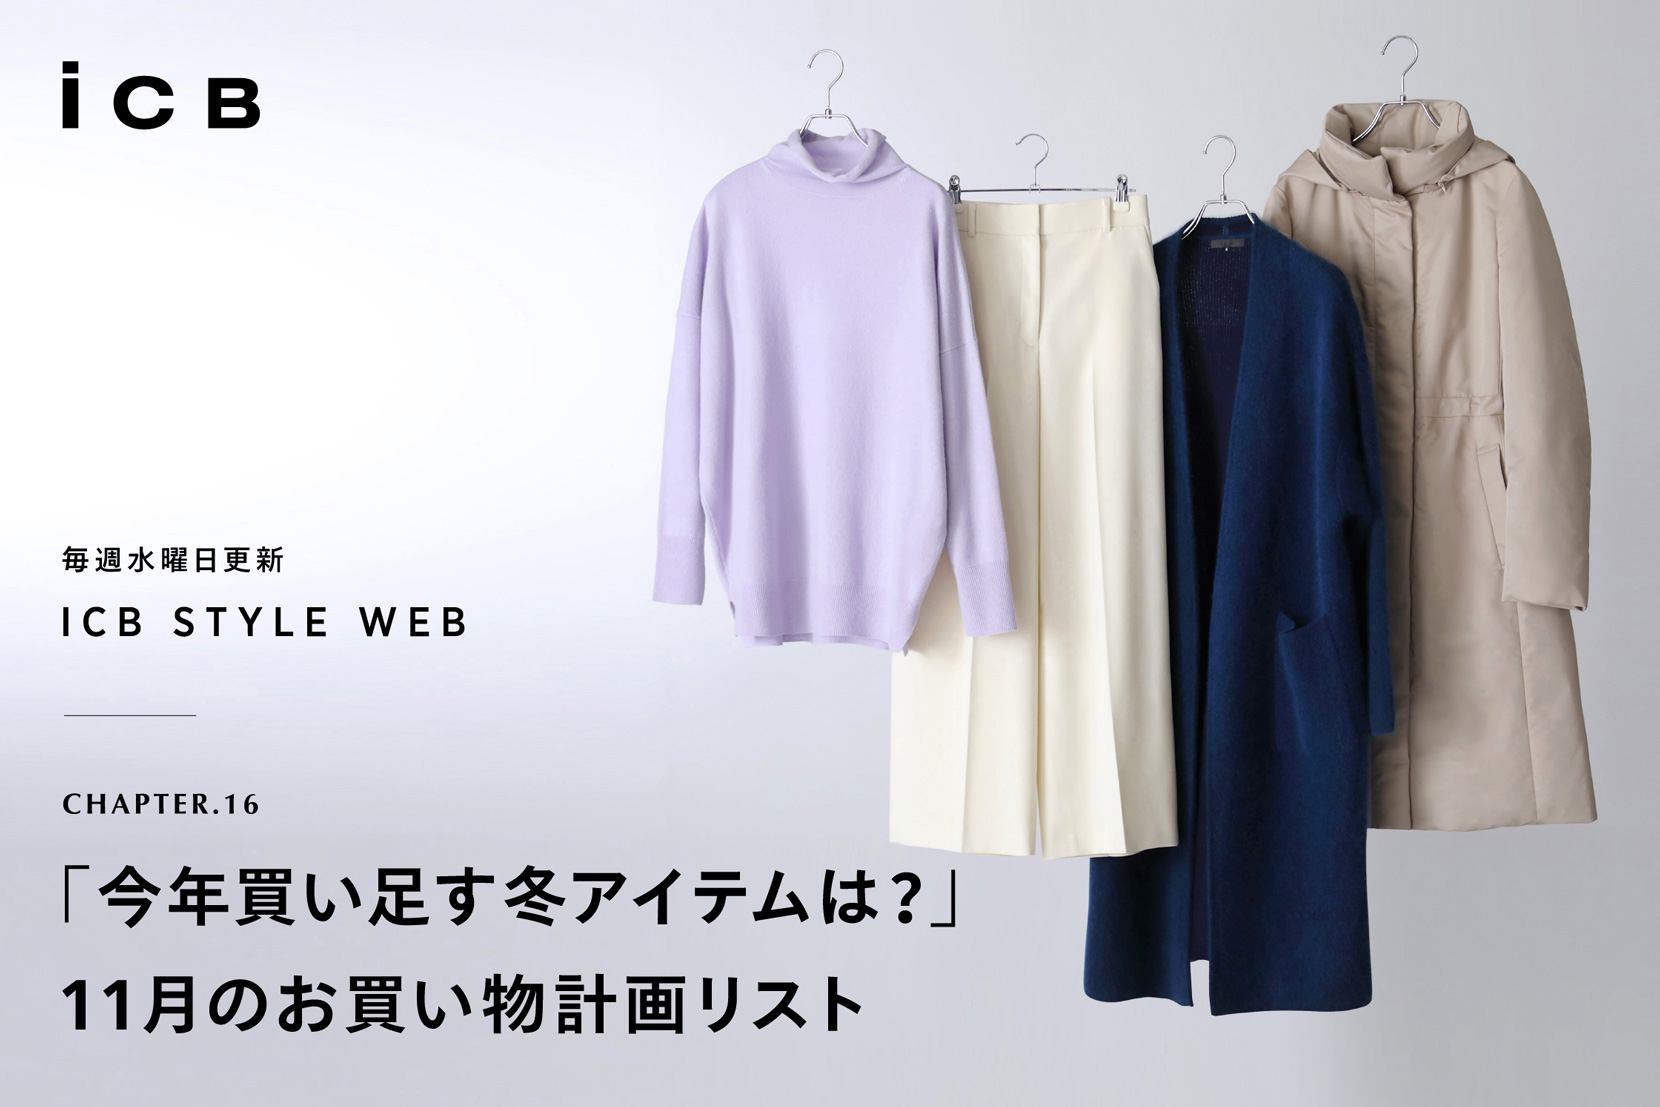 ICB STYLE WEB chapter.16「今年買い足す冬アイテムは?」 - ICB